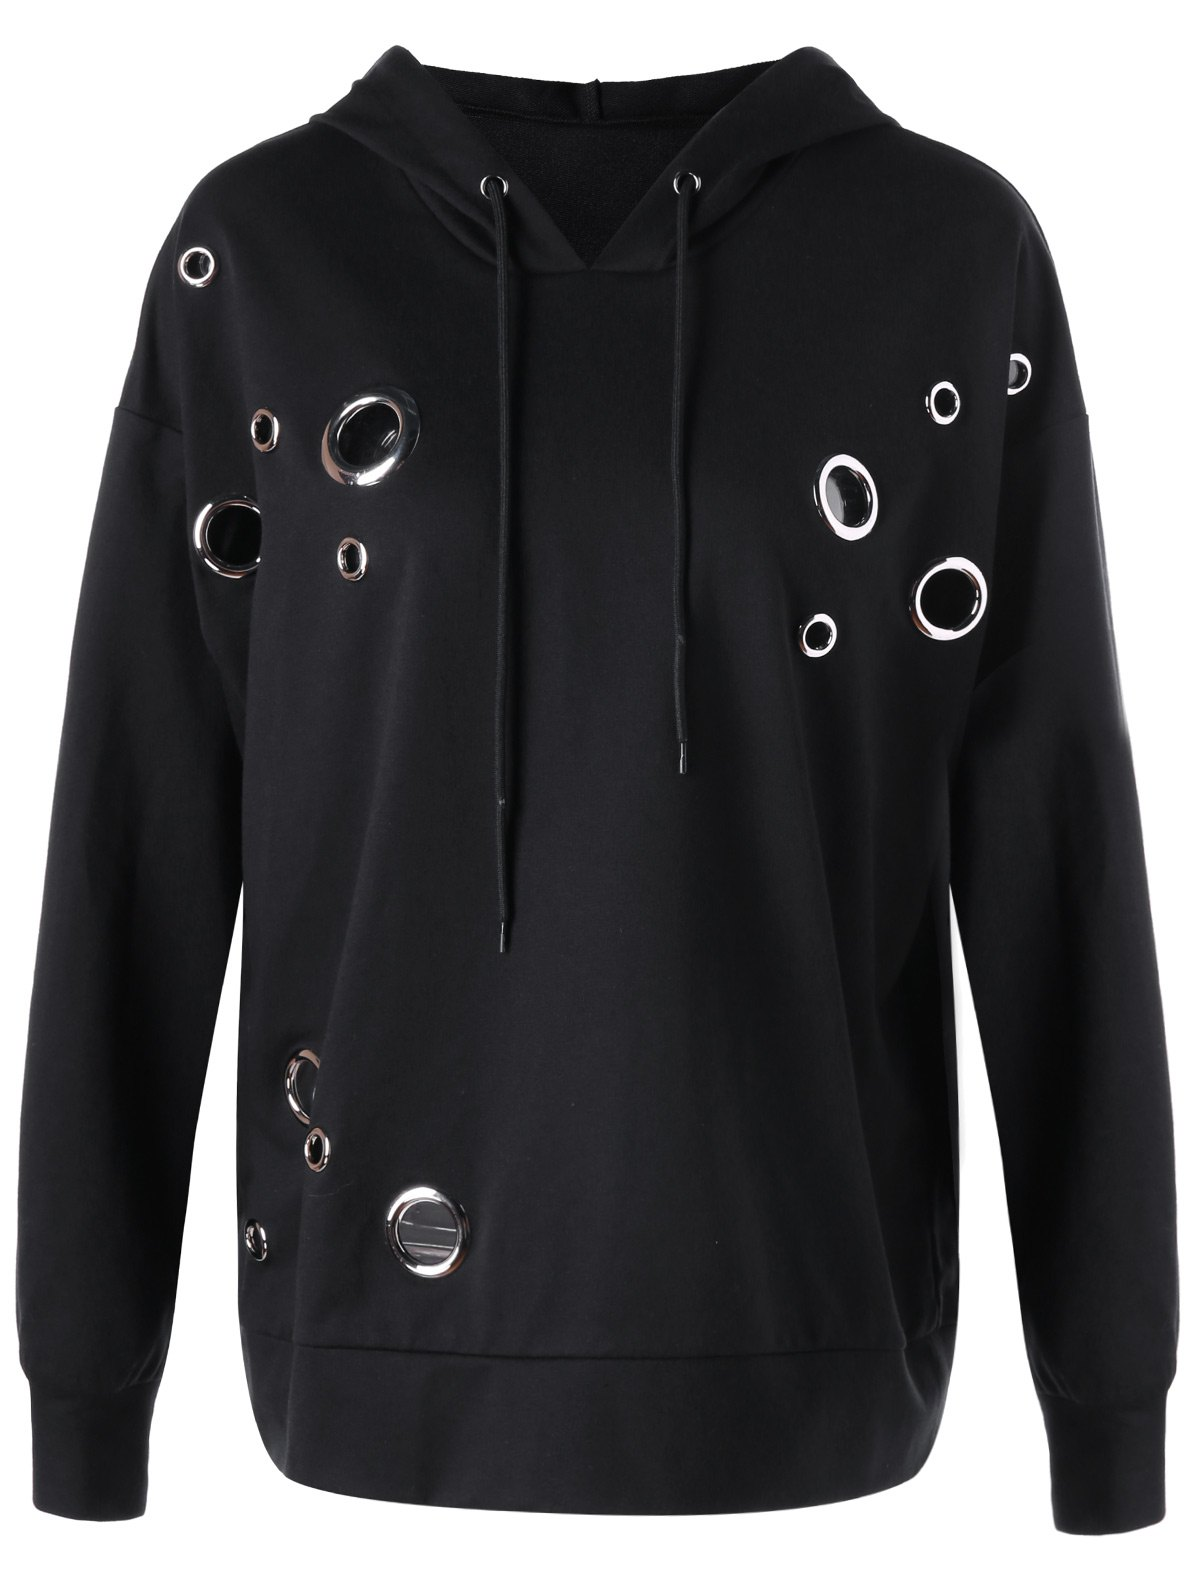 Casual Plus Size Metal Ring HoodieWOMEN<br><br>Size: 5XL; Color: BLACK; Material: Polyester,Spandex; Shirt Length: Regular; Sleeve Length: Full; Style: Fashion; Pattern Style: Solid; Season: Fall,Spring; Weight: 0.5140kg; Package Contents: 1 x Hoodie;